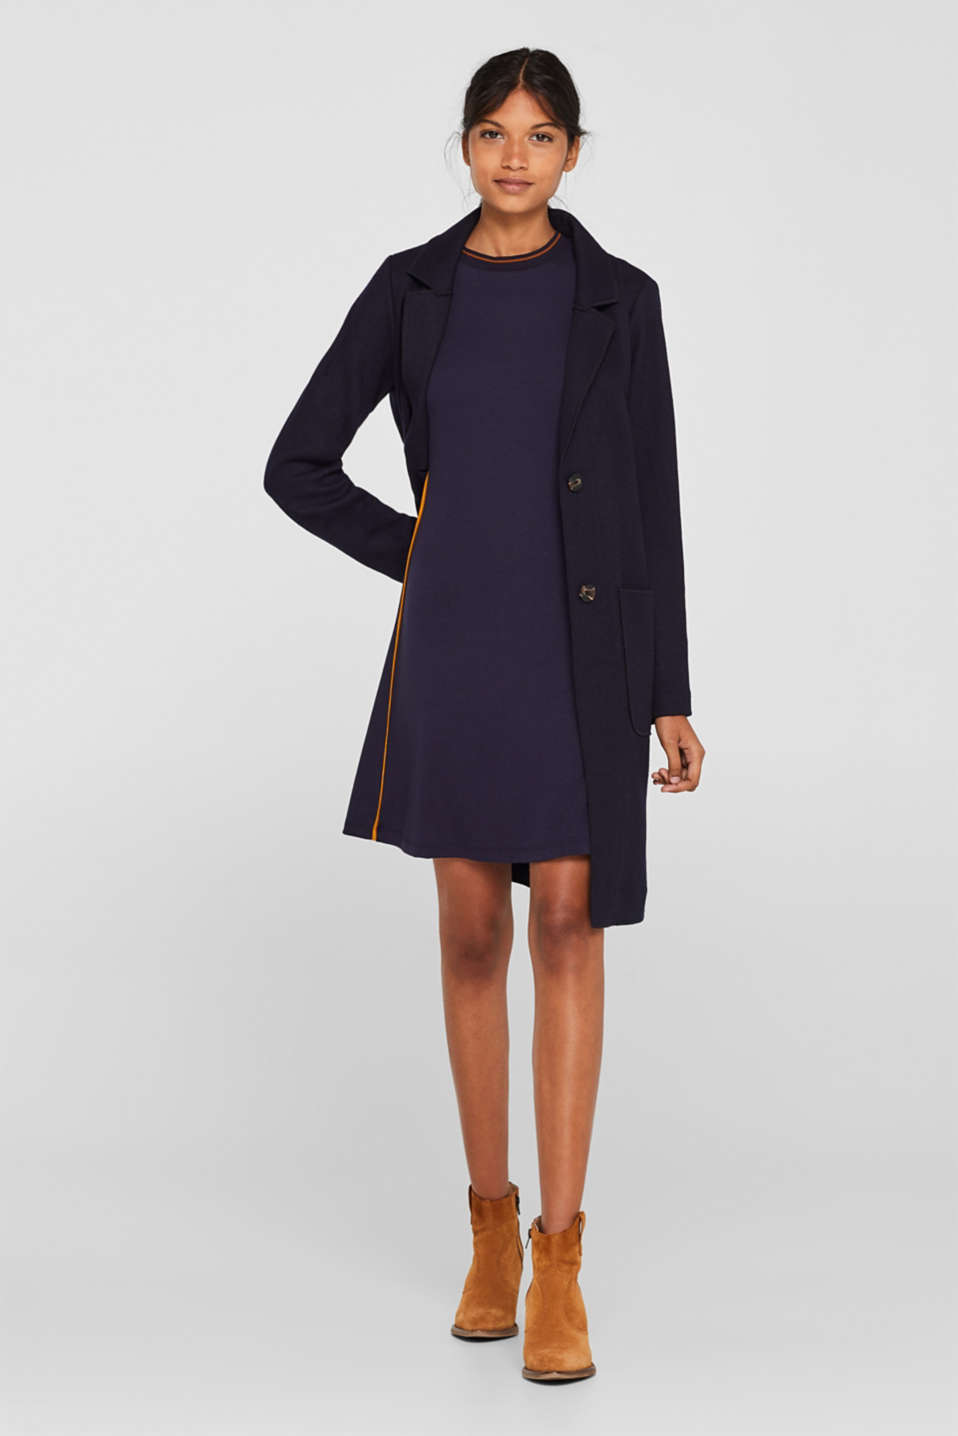 Piped stretch jersey dress, NAVY, detail image number 1